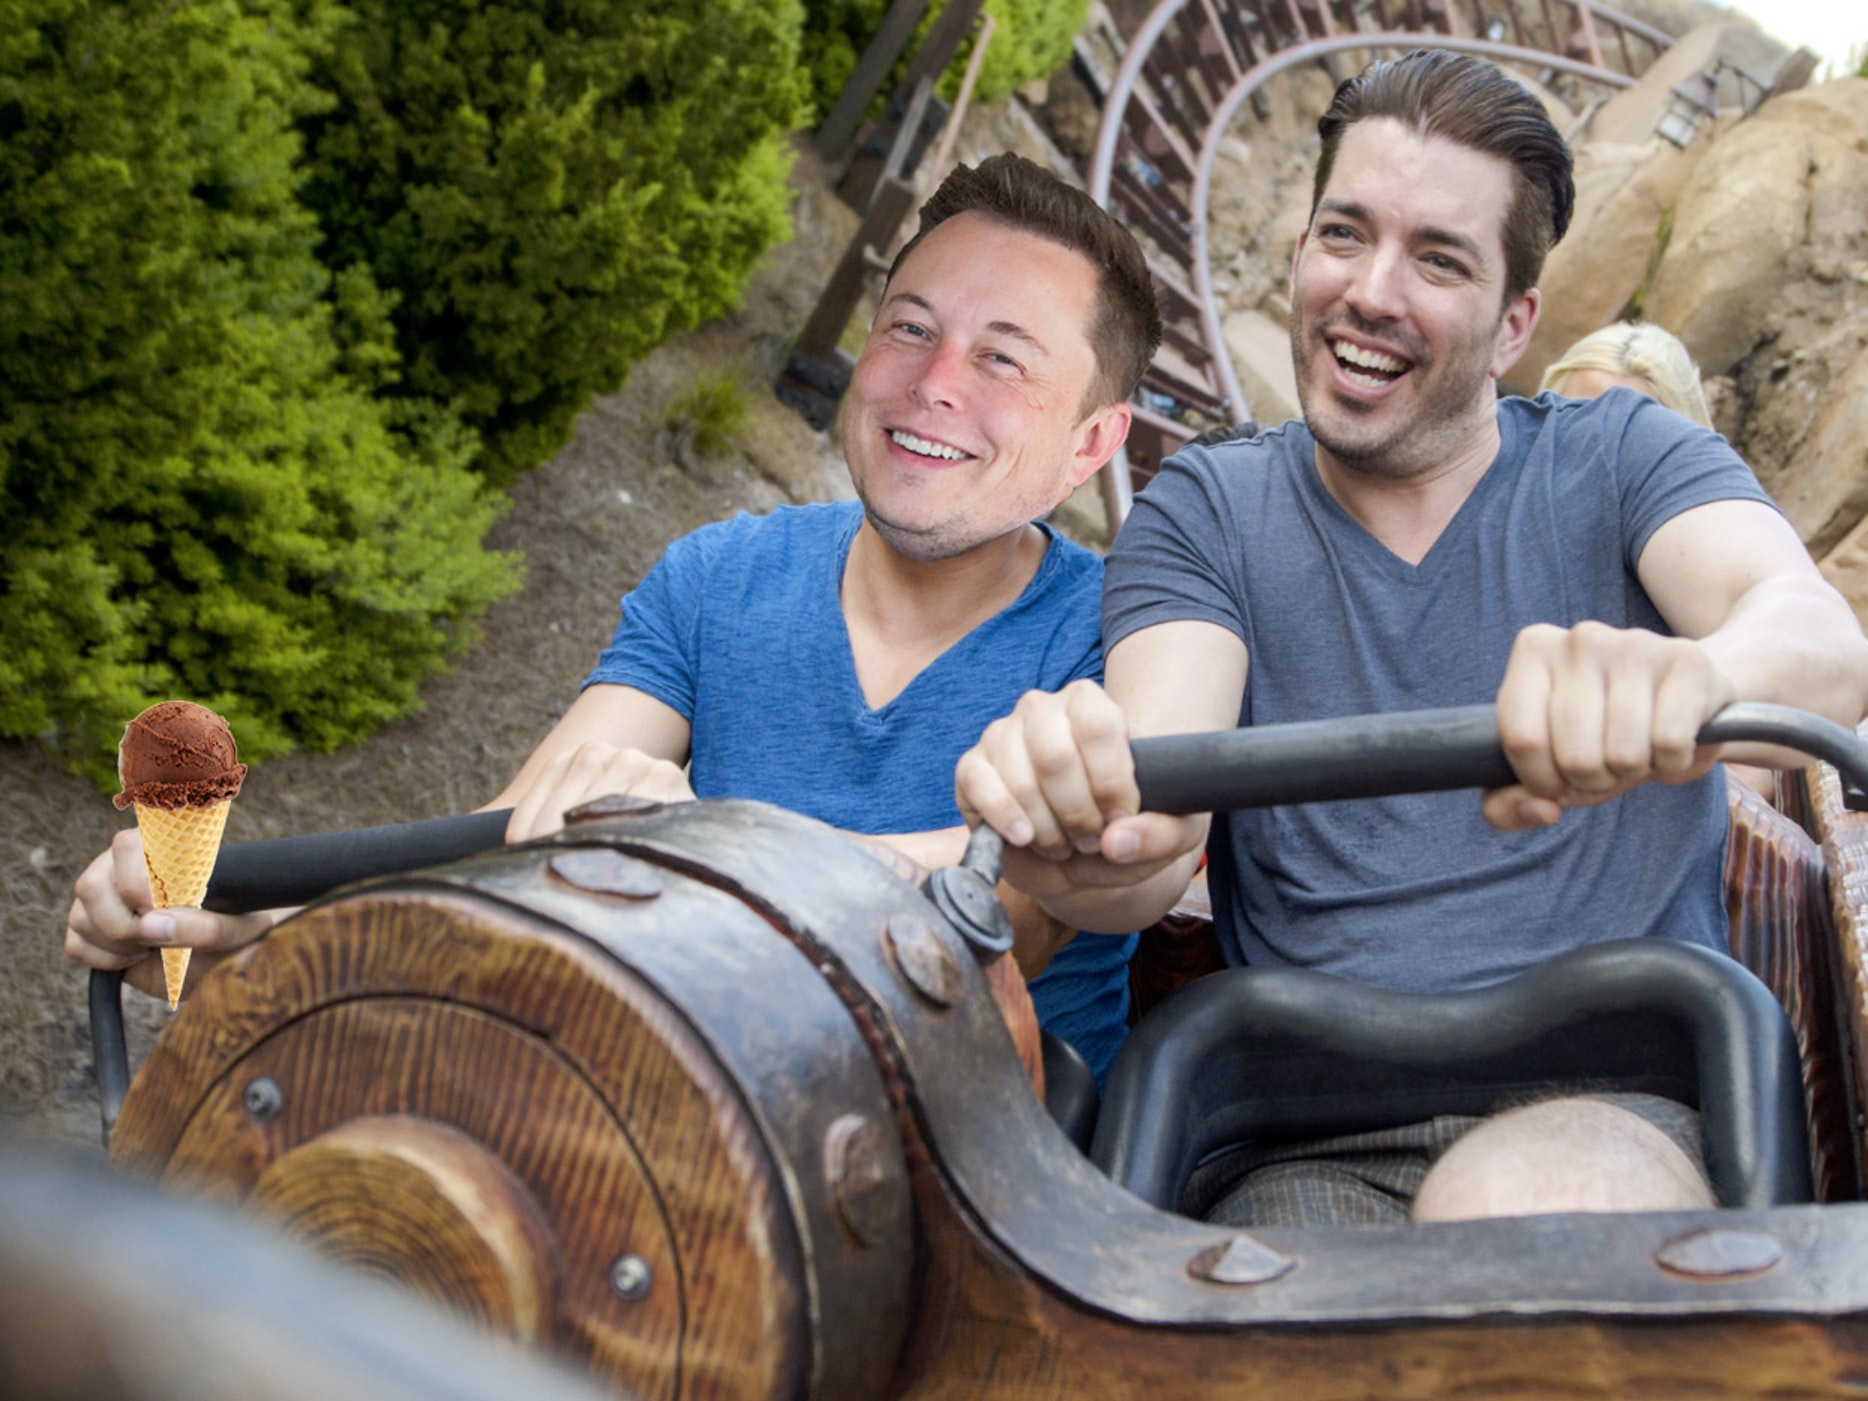 Elon Musk Hates Unions, Loves Frozen Yogurt and Roller Coasters